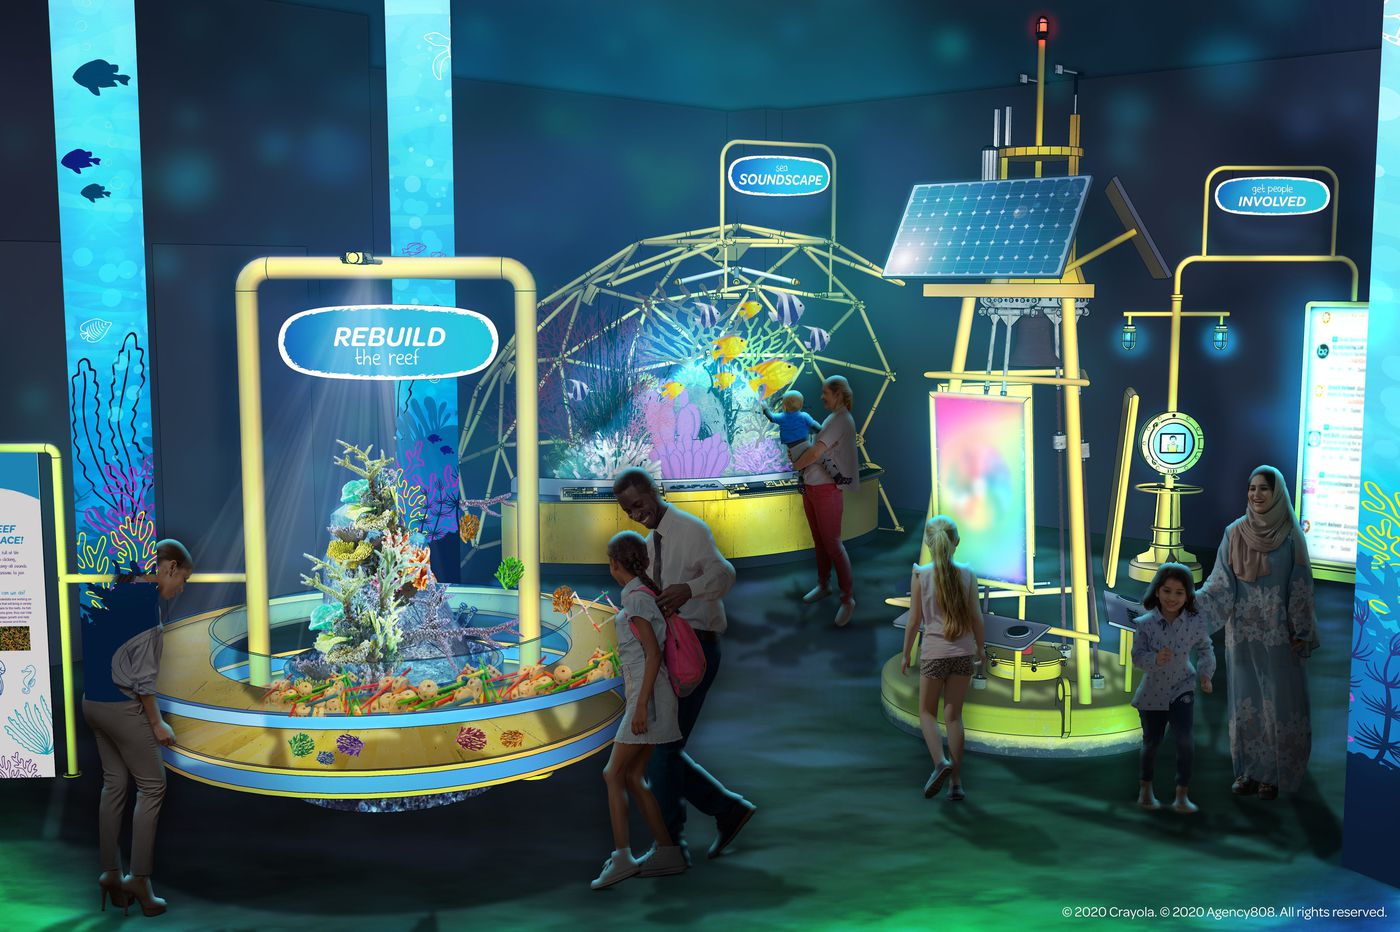 Franklin Institute and Crayola are building an idea space of the future, opening Feb. 2021